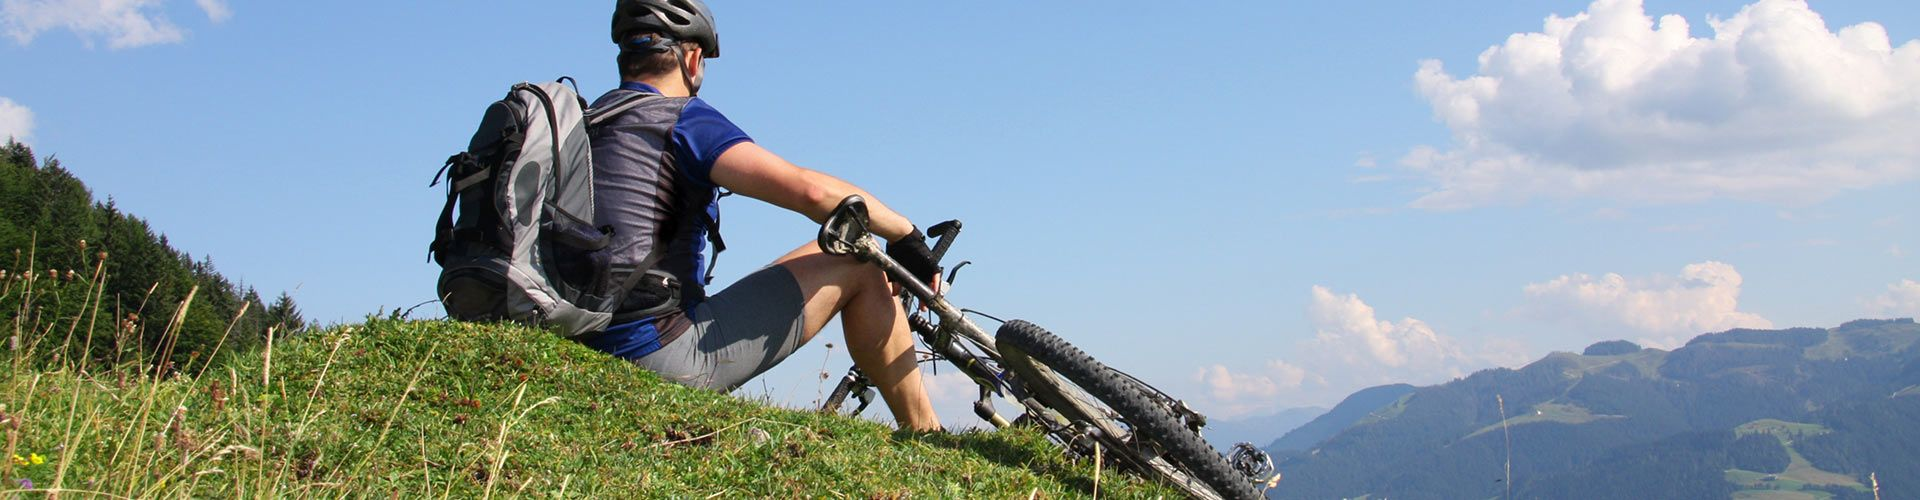 Mountainbiker am Berg